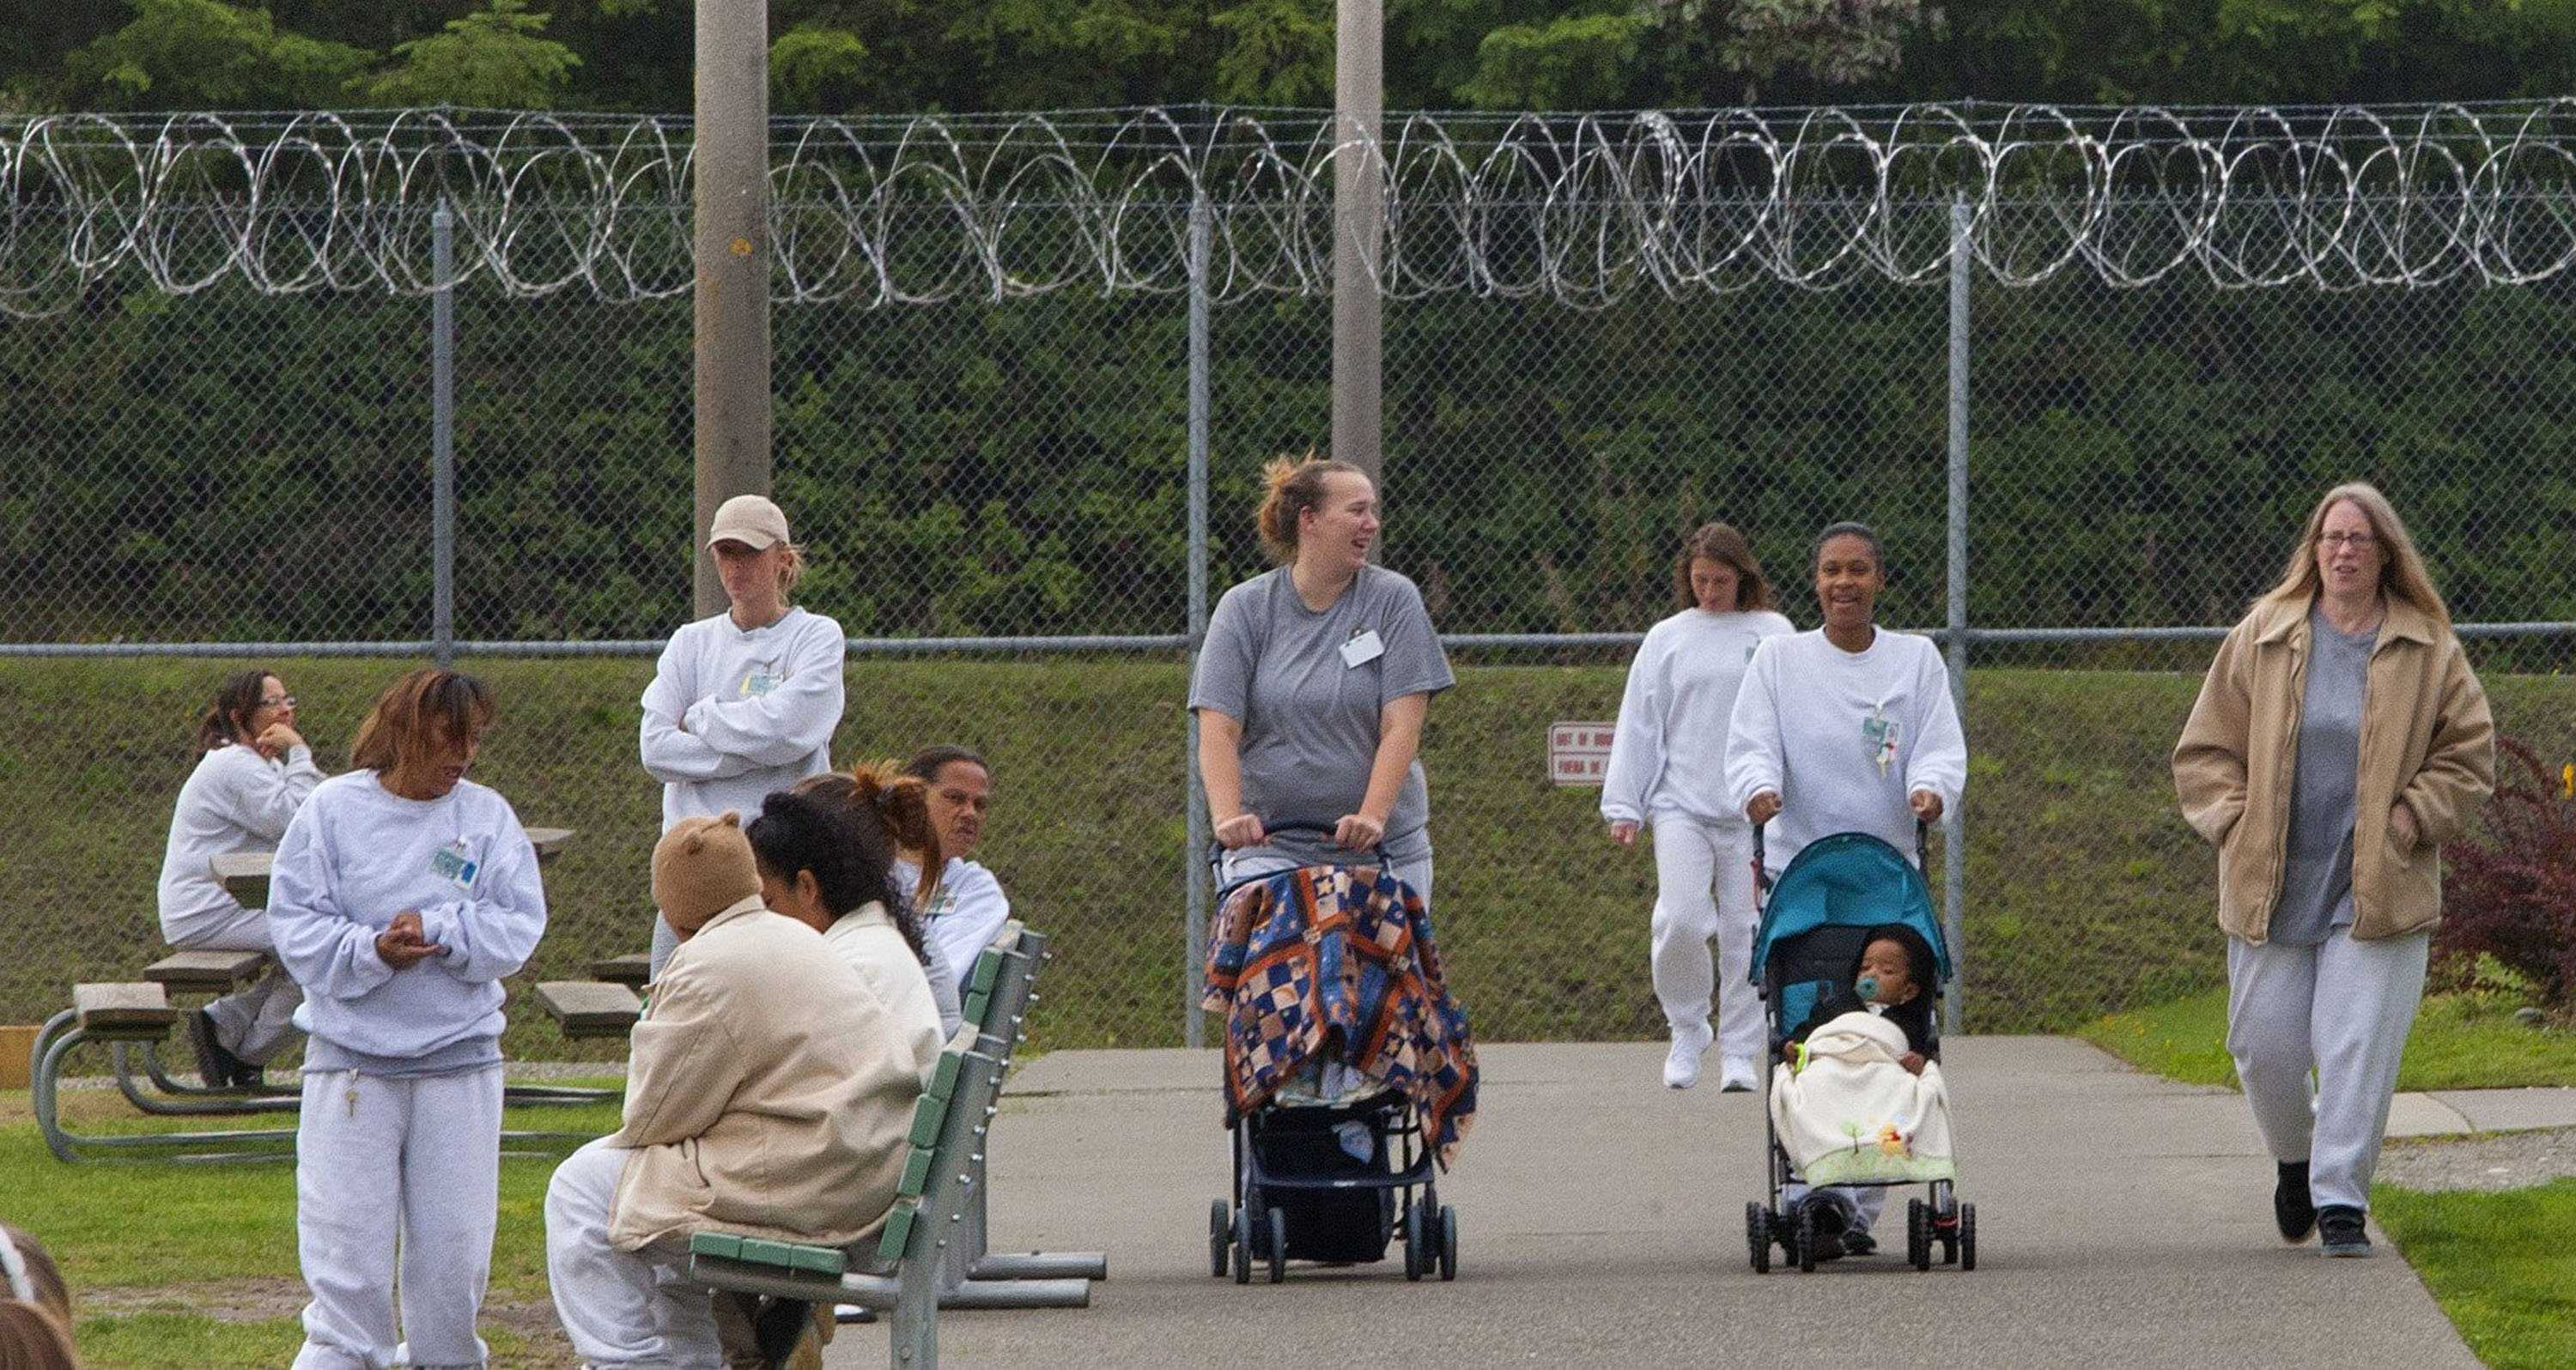 Women prisoners are taking their babies for a walk. However for some, they have been denied the privilege of walking their own child. Courtesy of MCT